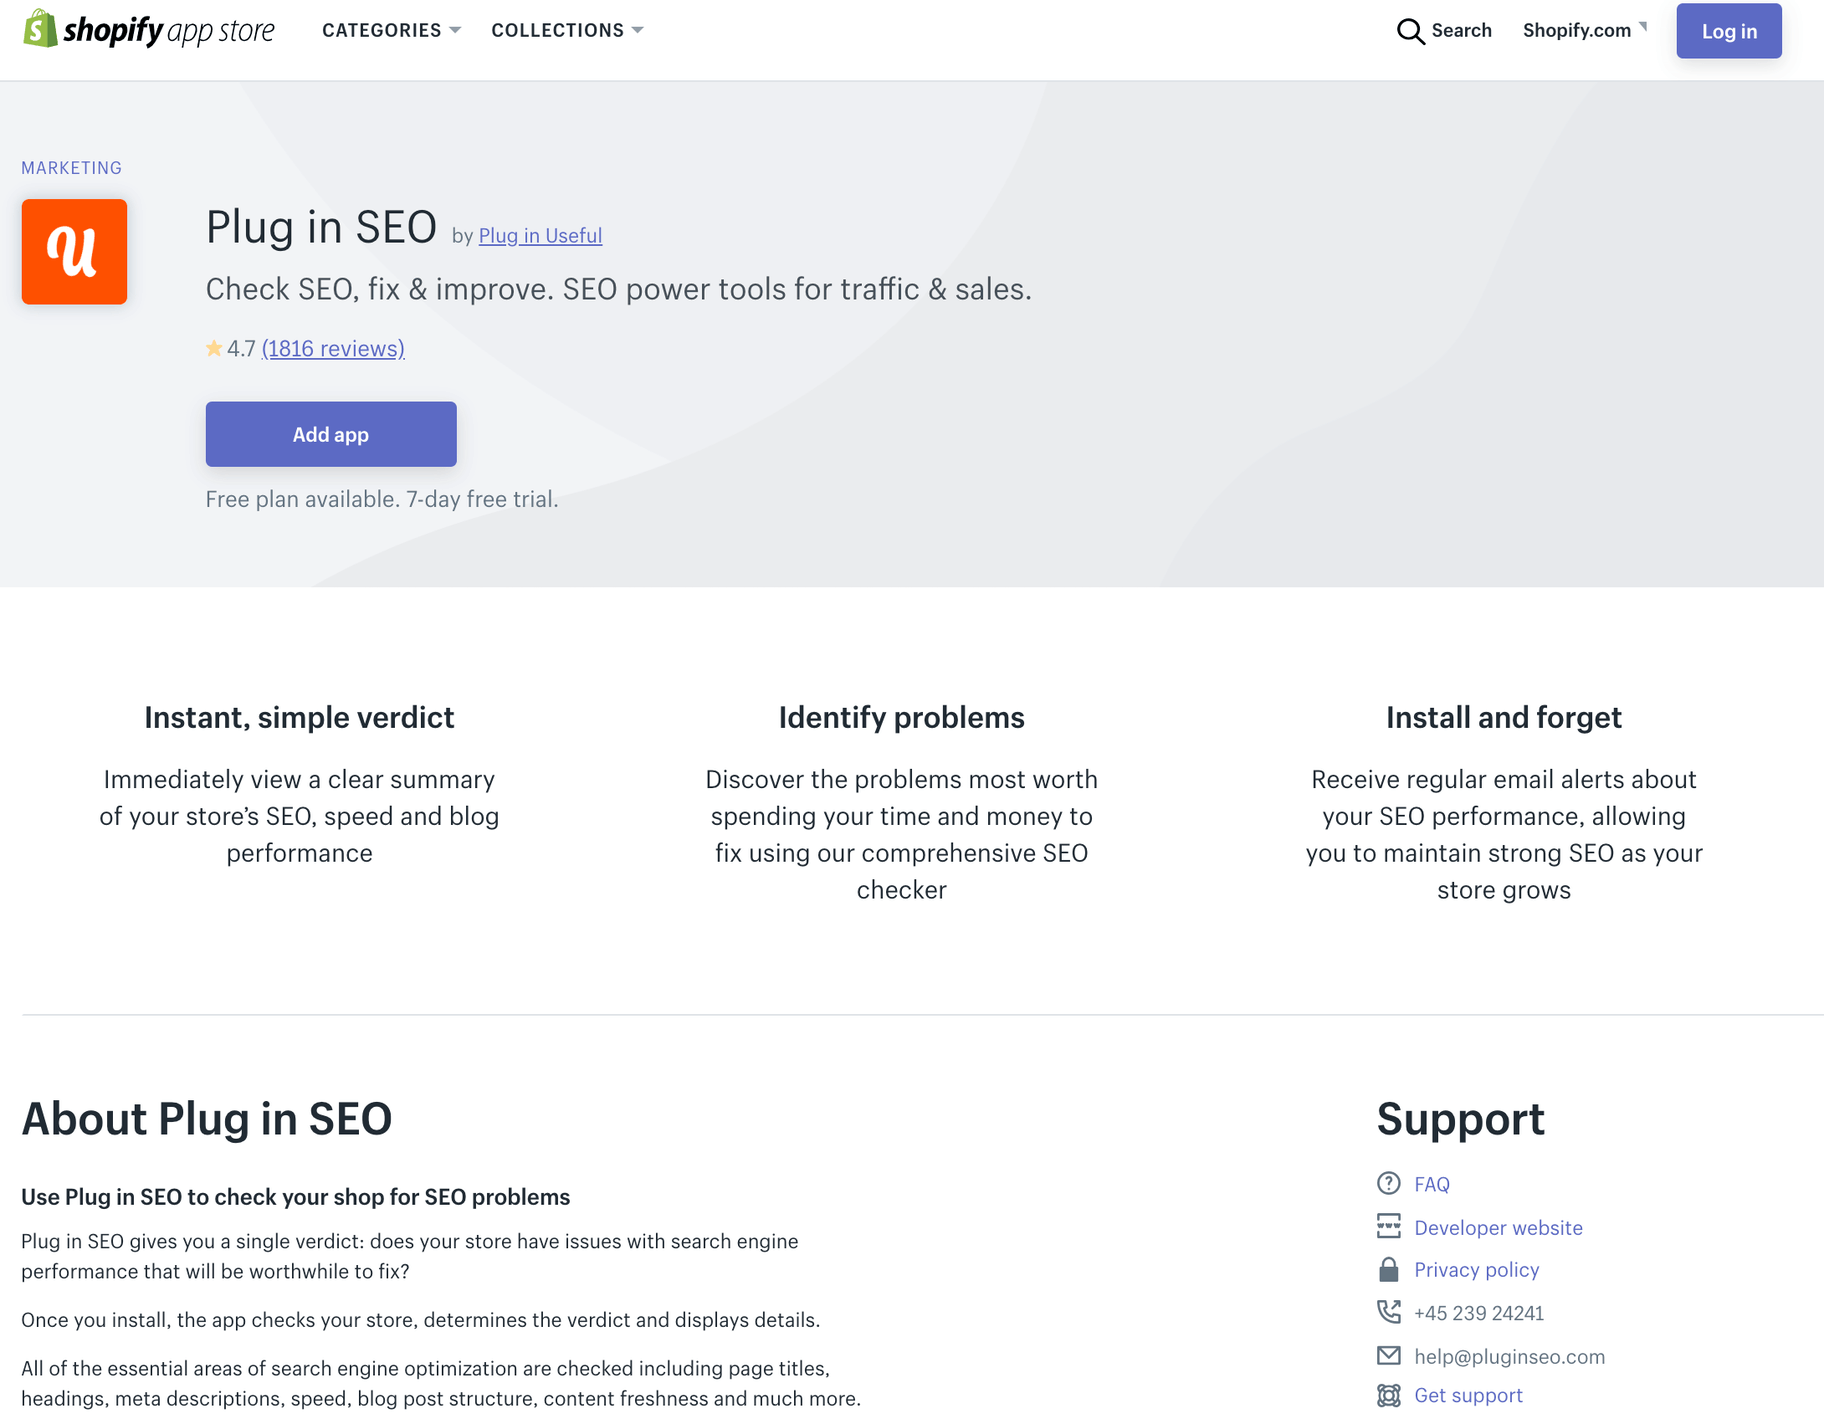 Plug in SEO by Plug in Useful